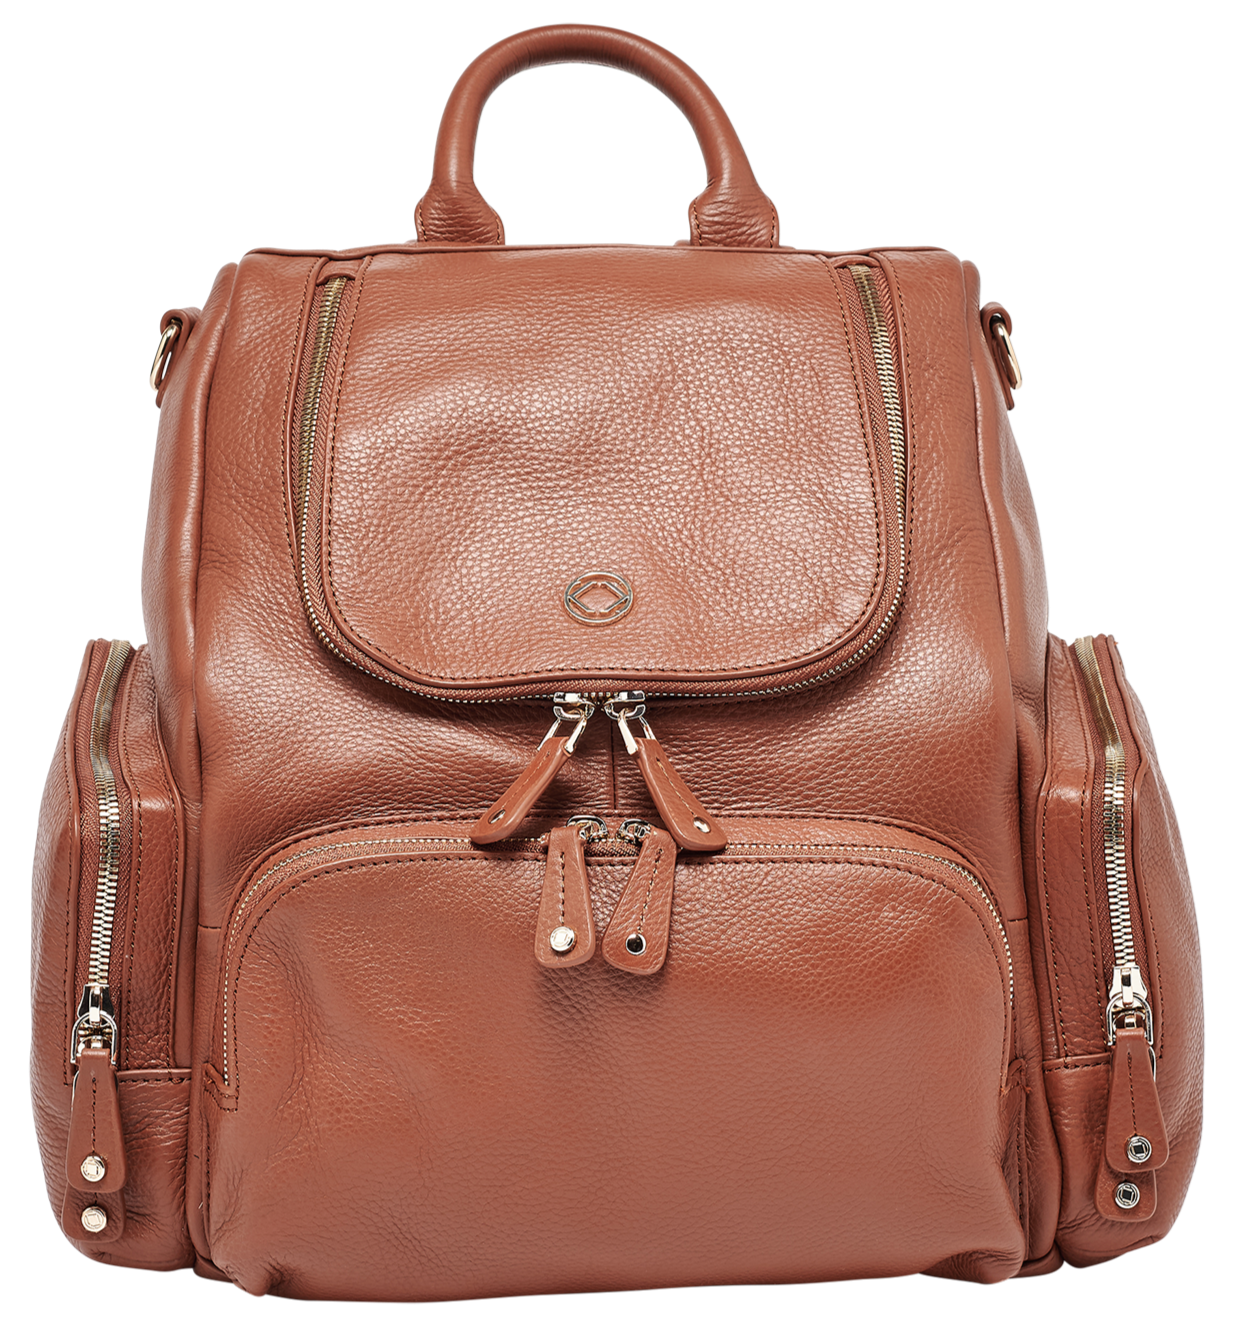 Luxury designer Amber Midi Tan leather organiser diaper changing backpack